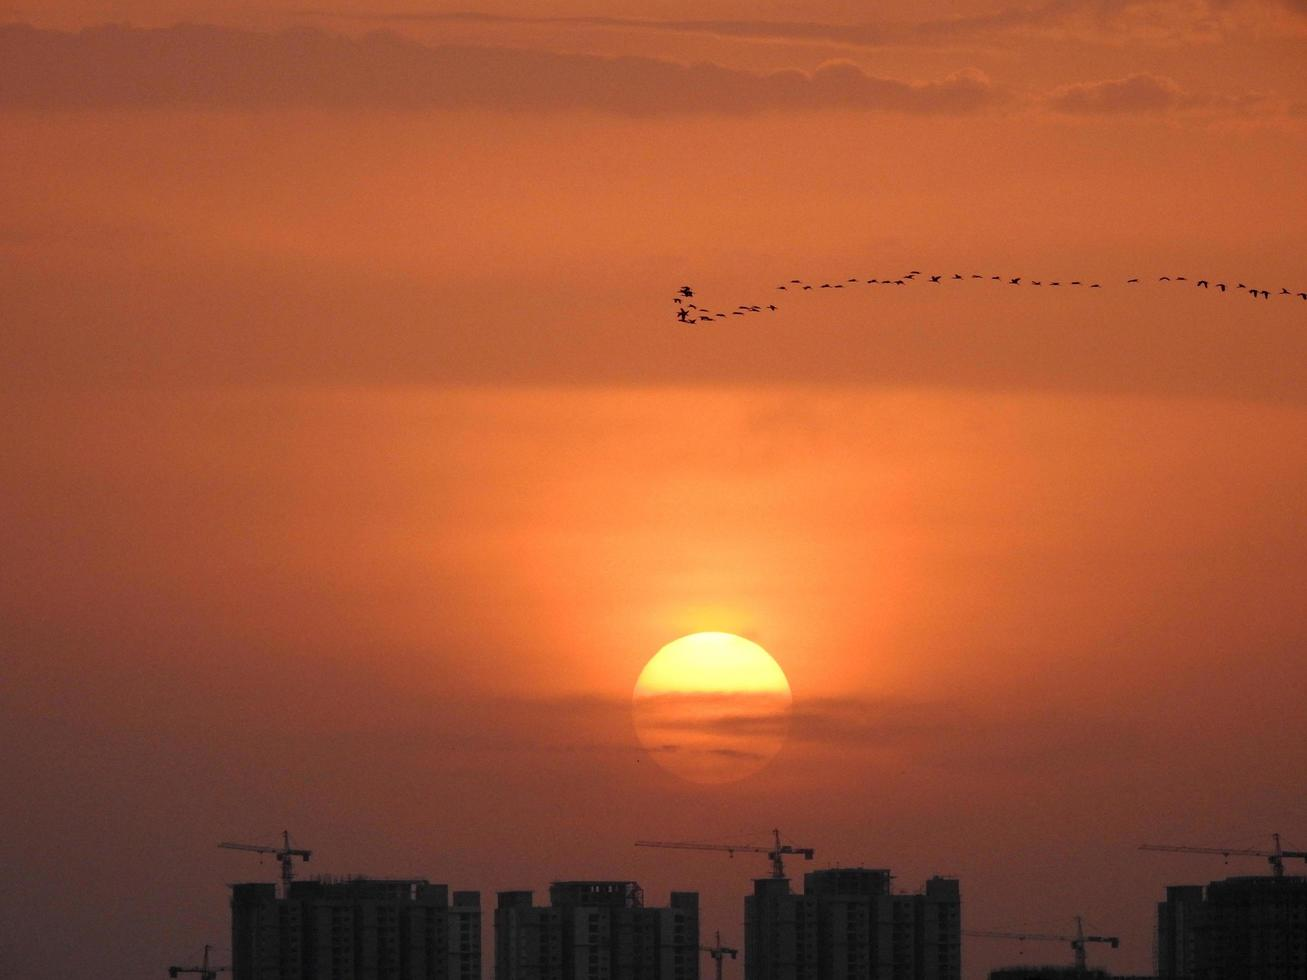 Birds over city at sunset photo